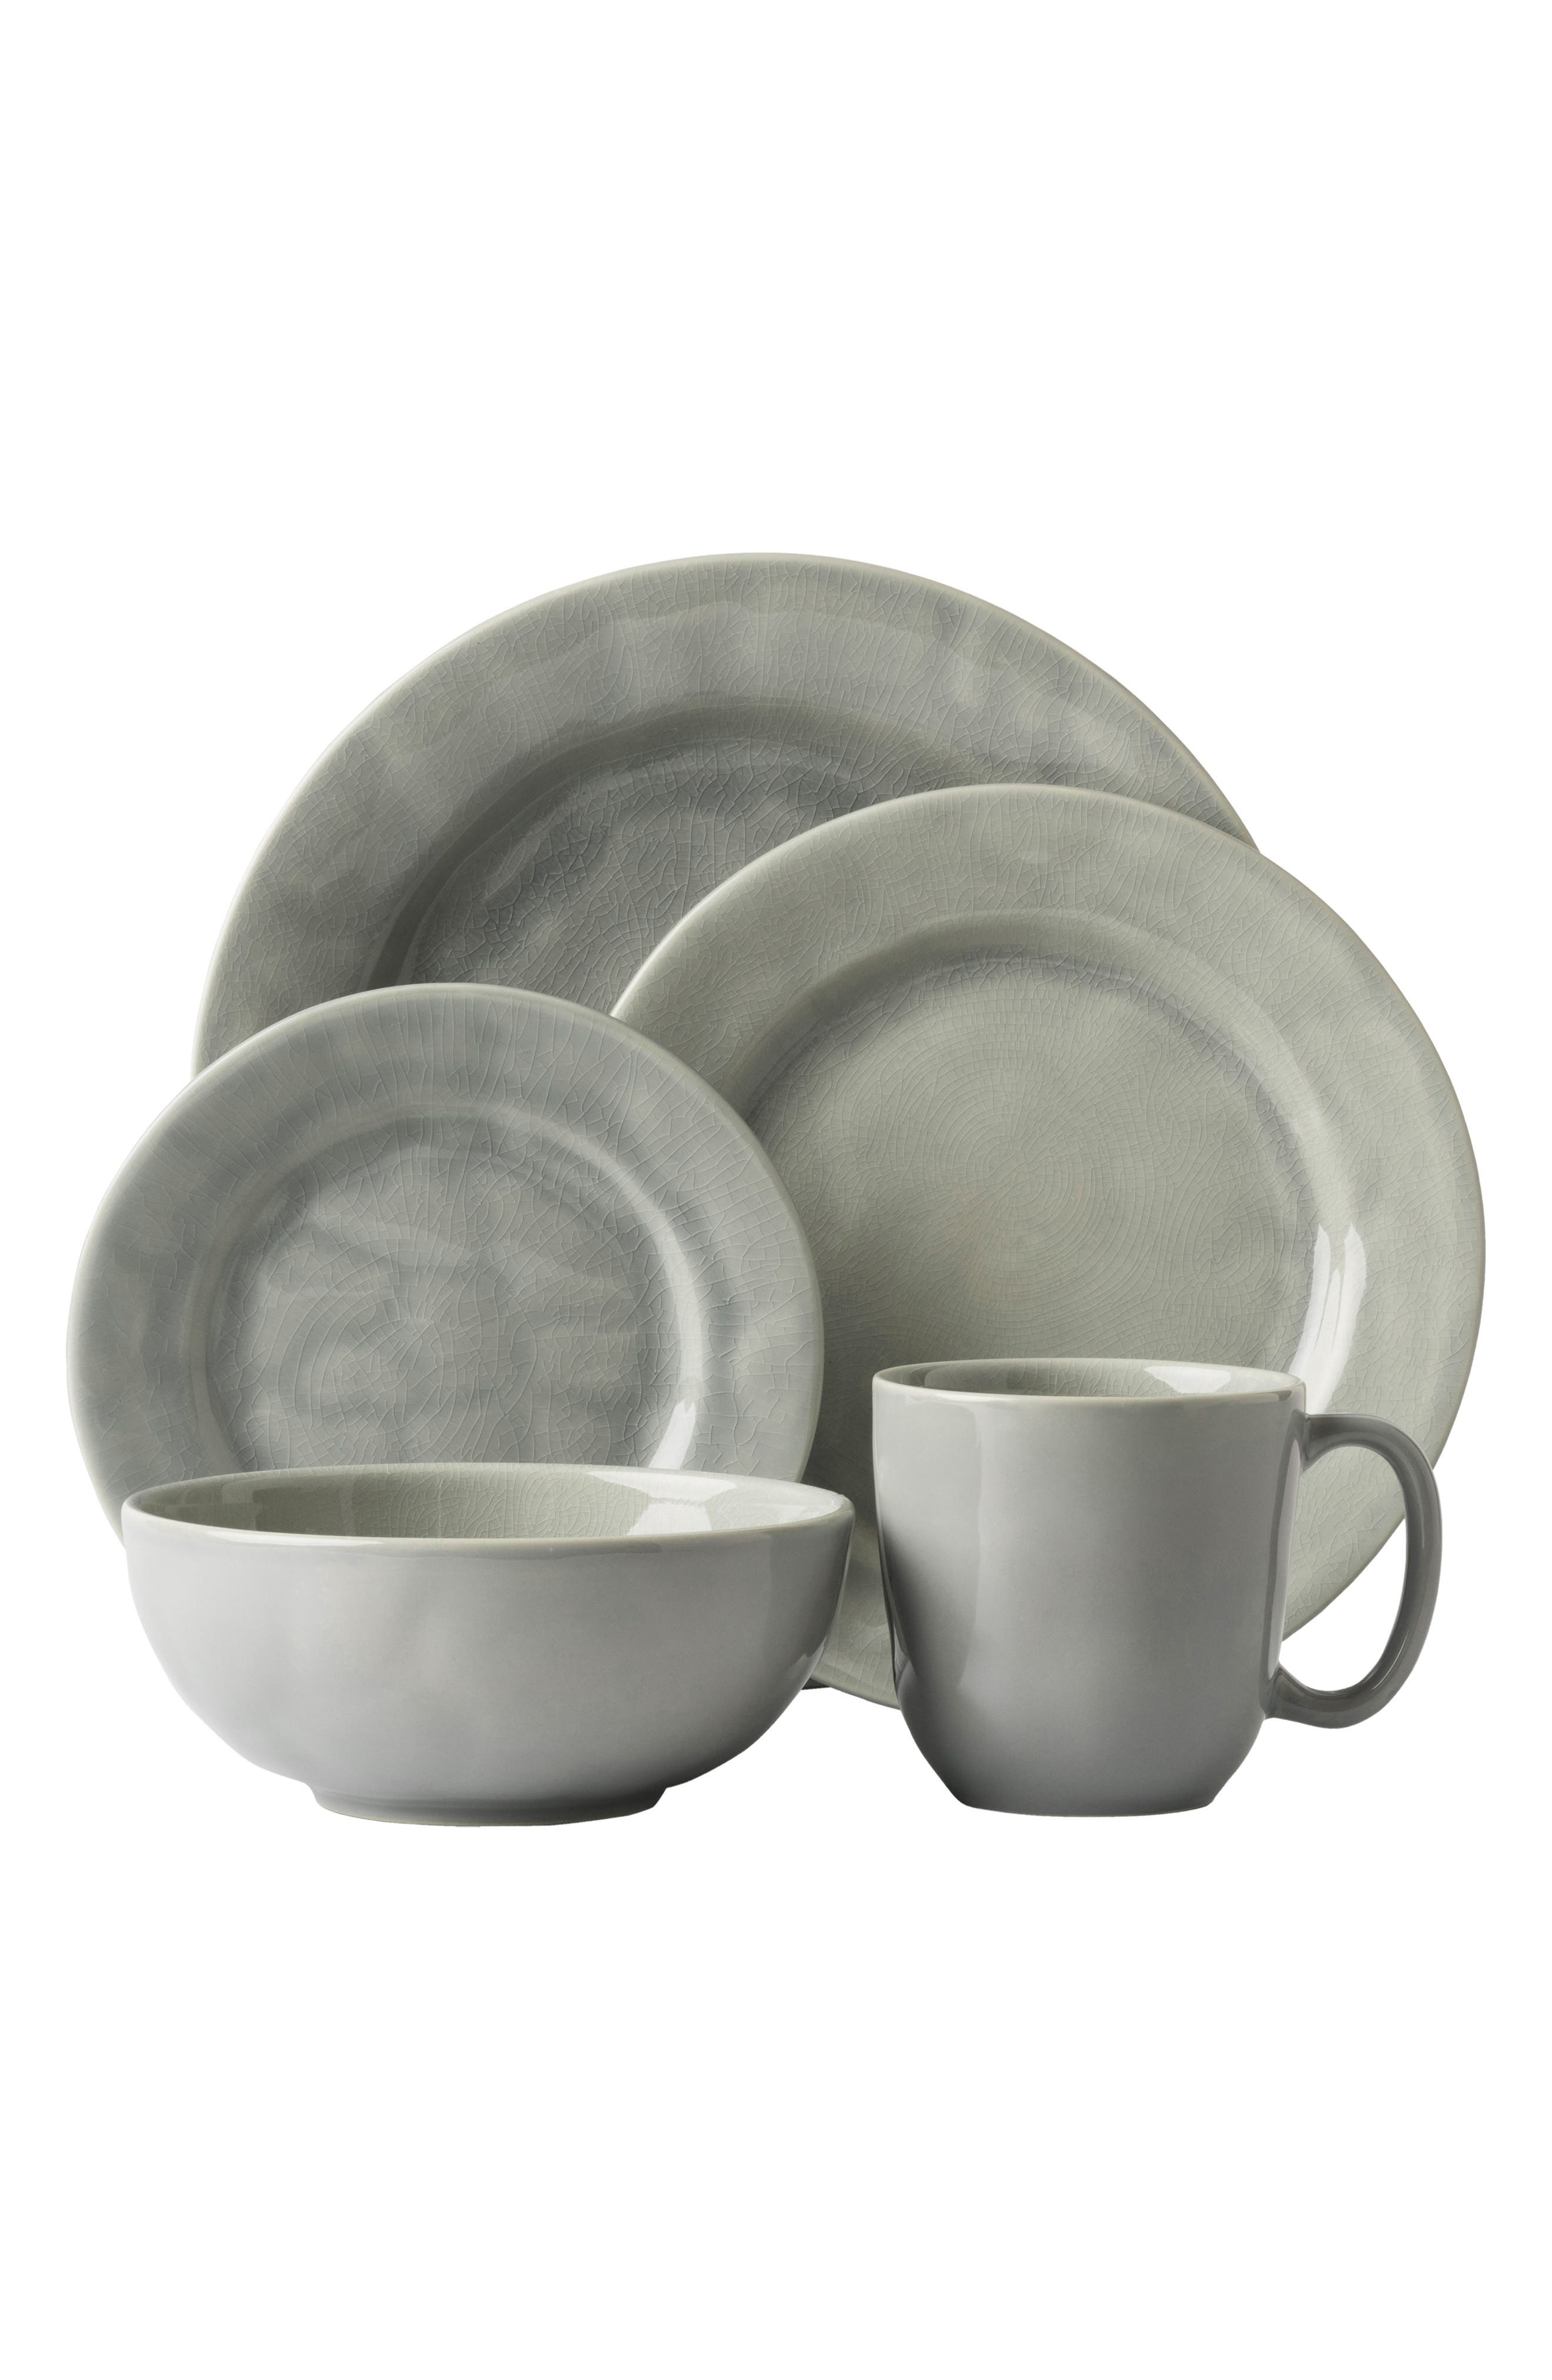 Juliska 'Puro - Grey Crackle' 5-Piece Place Setting